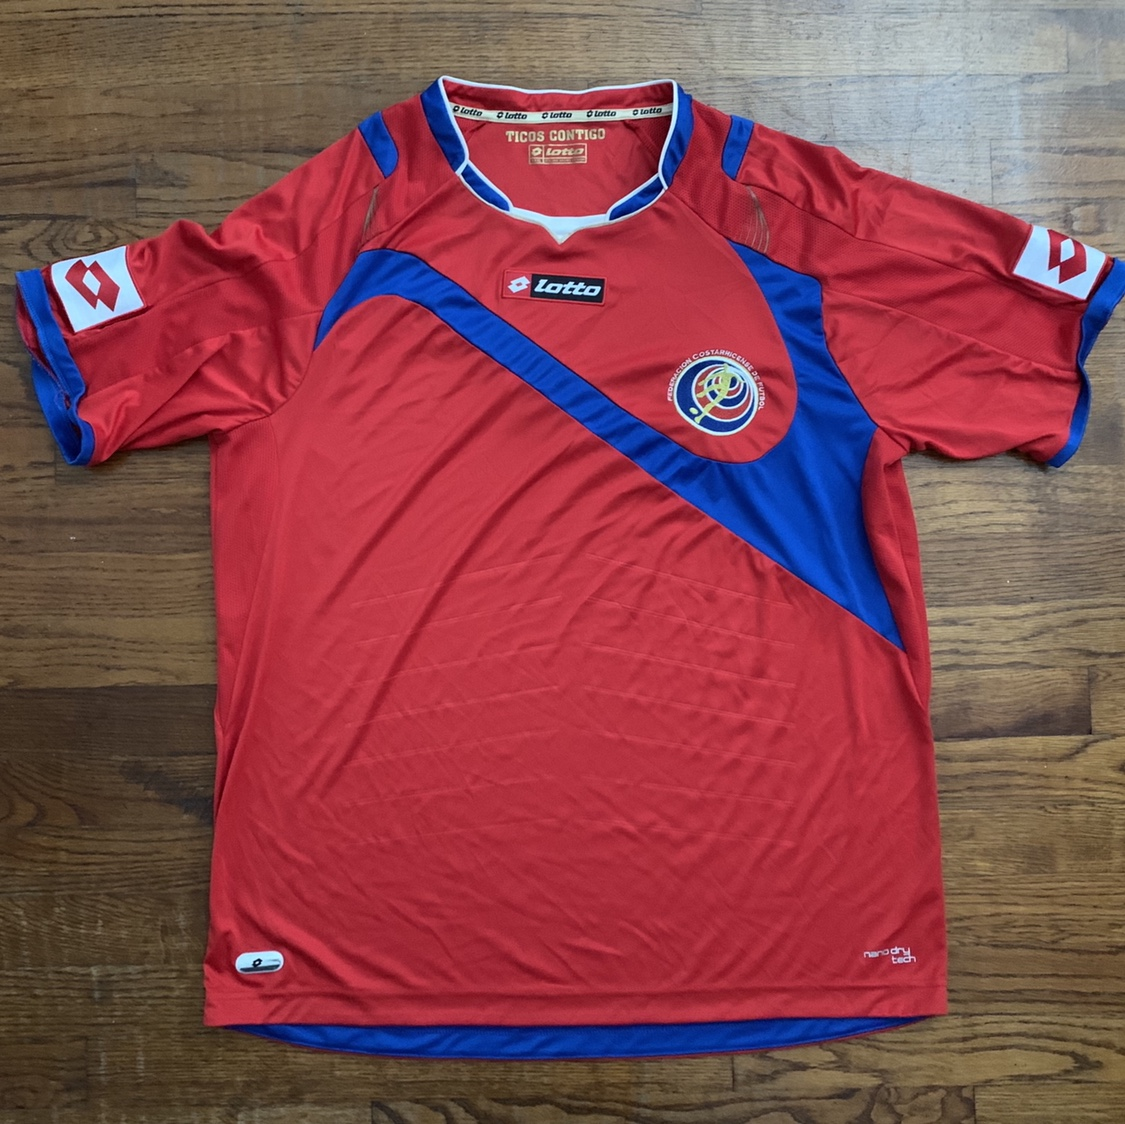 buy popular a7bd2 4c337 2014 Lotto Costa Rica National Team Jersey Tagged... - Depop